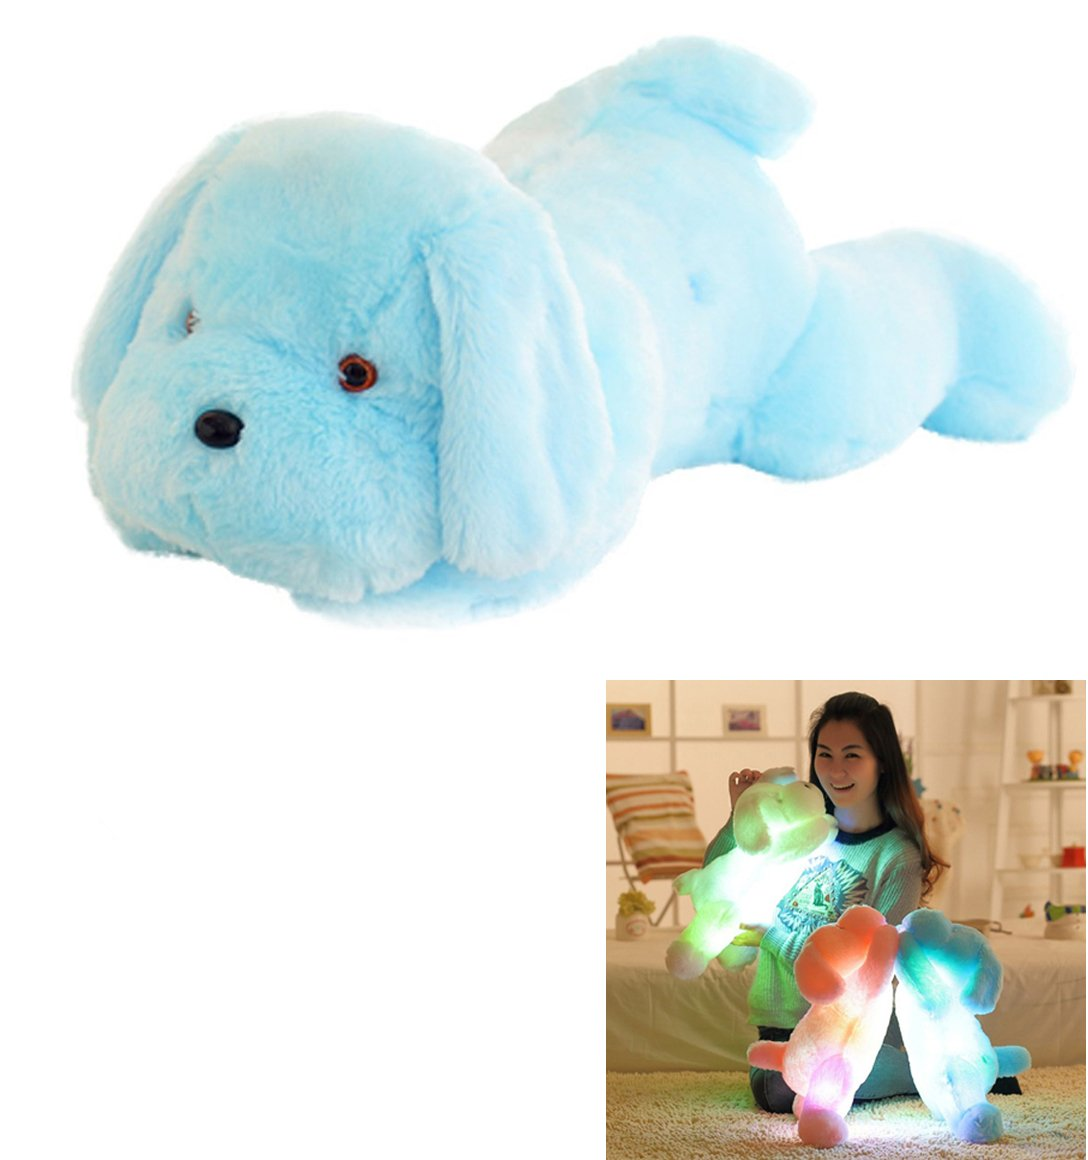 Vivian Inductive Glow Dog Plush Toy LED Nightlight Soft Stuff Toy Gifts for Kids (Blue)